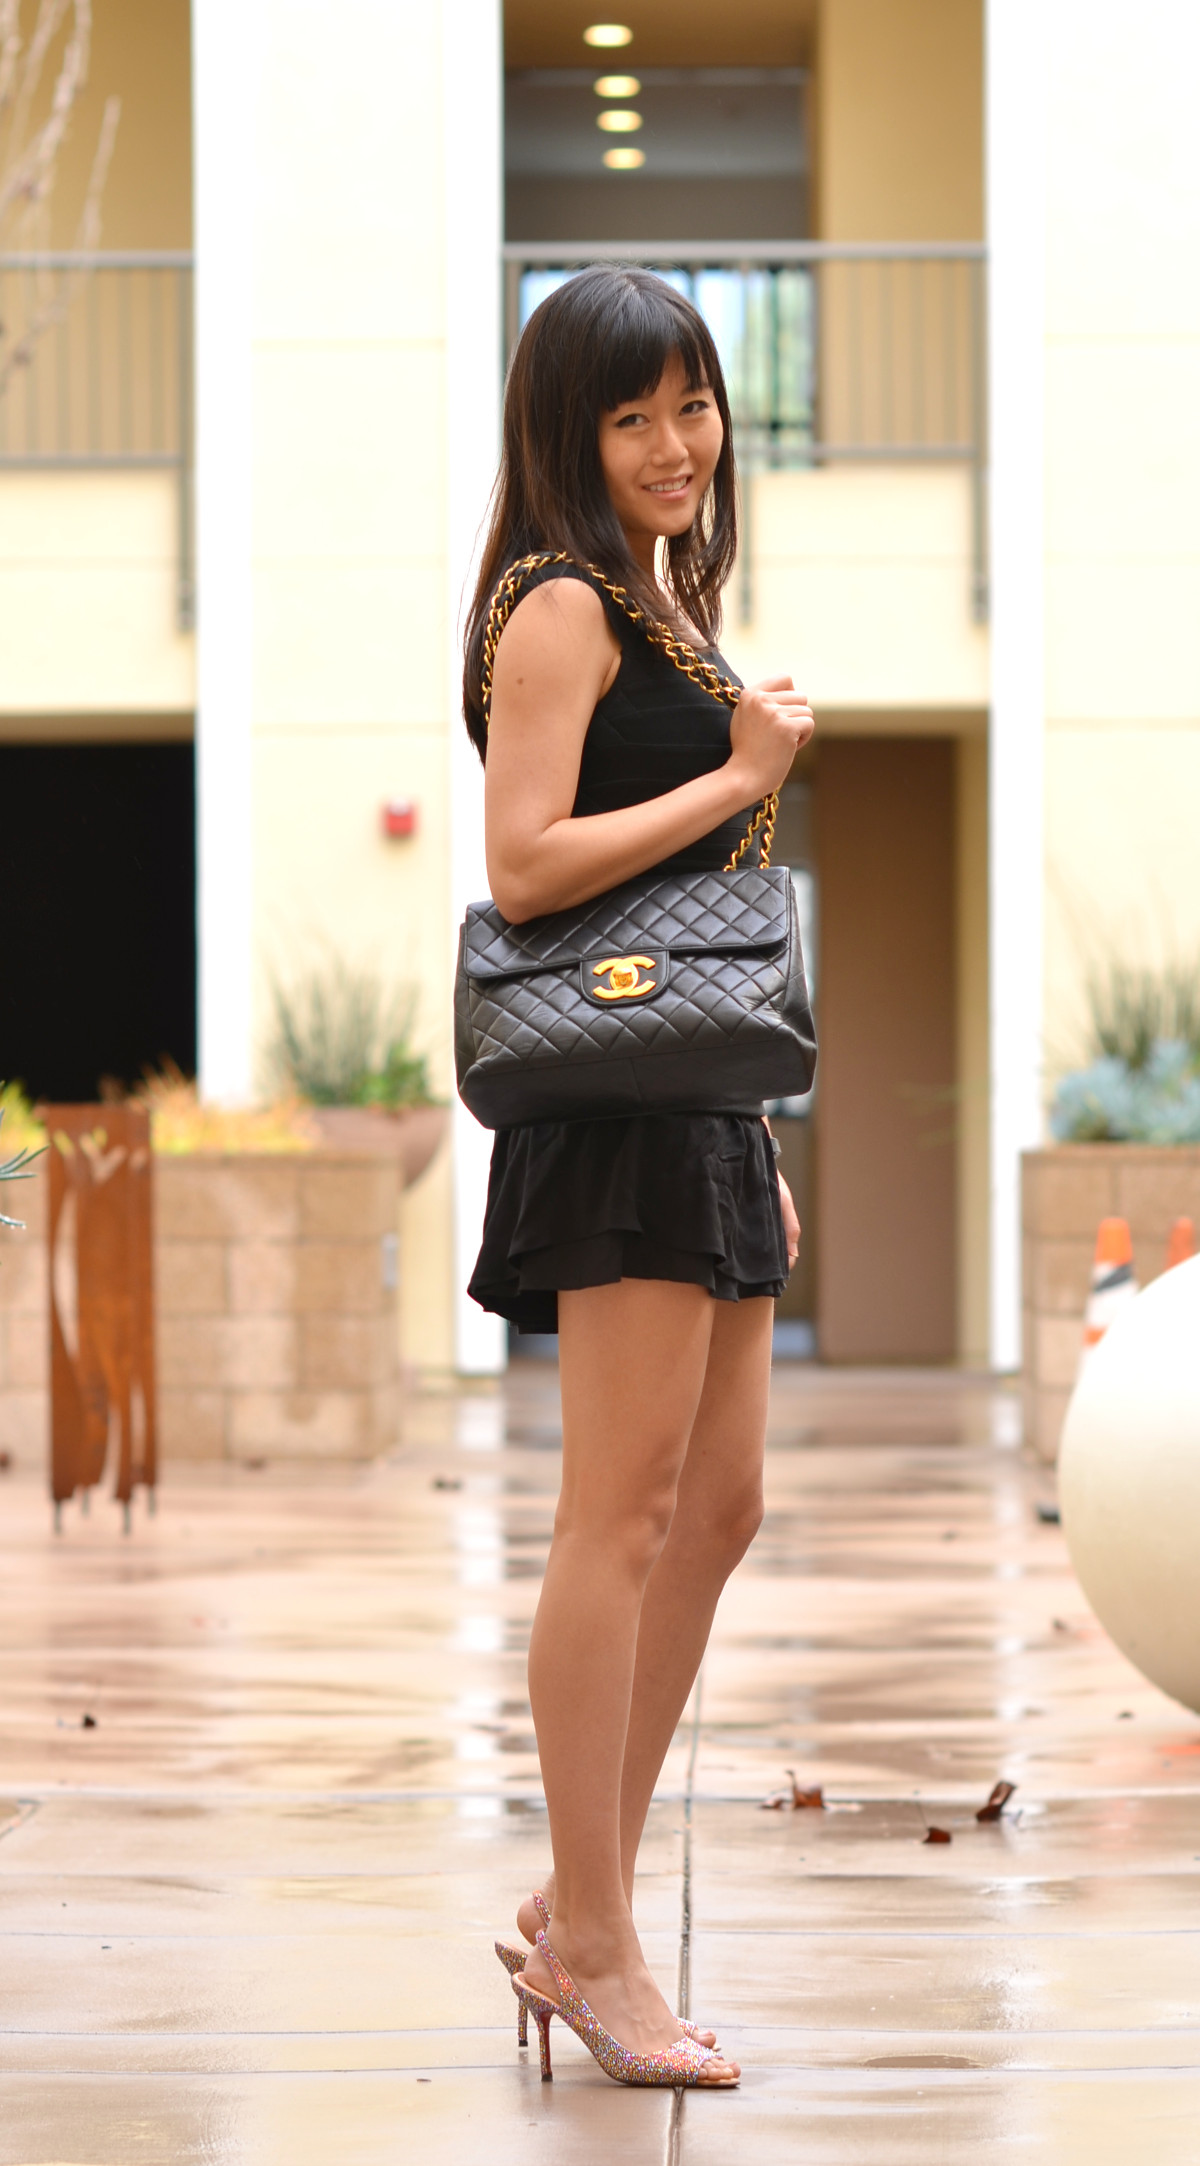 herve leger skirt smocked express skort Chanel jumbo bag strassed Christian Louboutin outfit